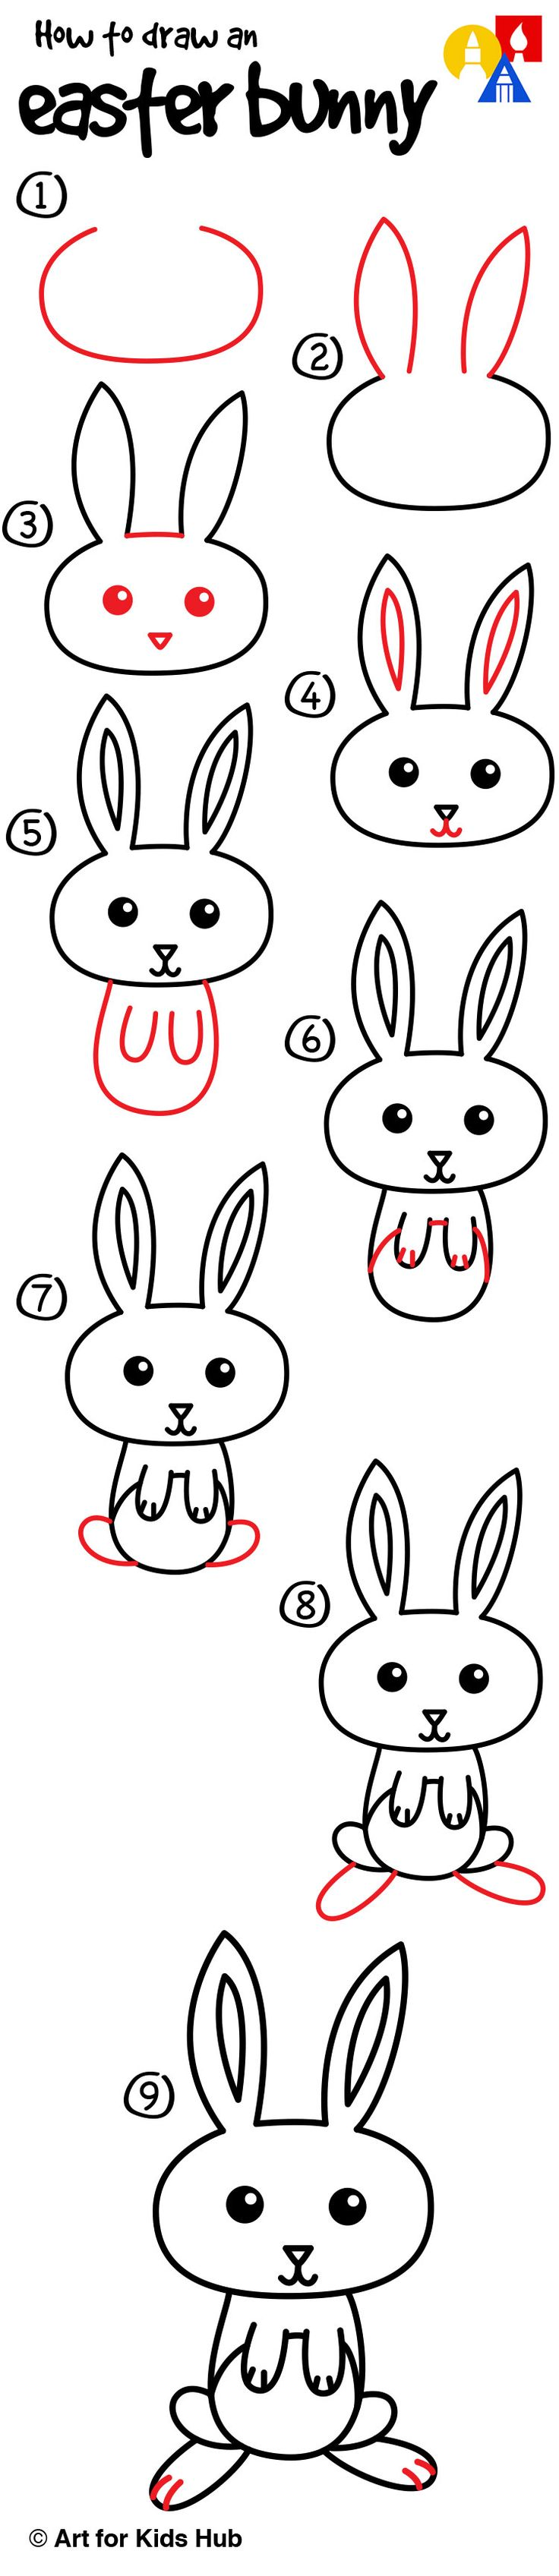 Bathroom drawing for kids - How To Draw A Cartoon Easter Bunny Art For Kids Hub